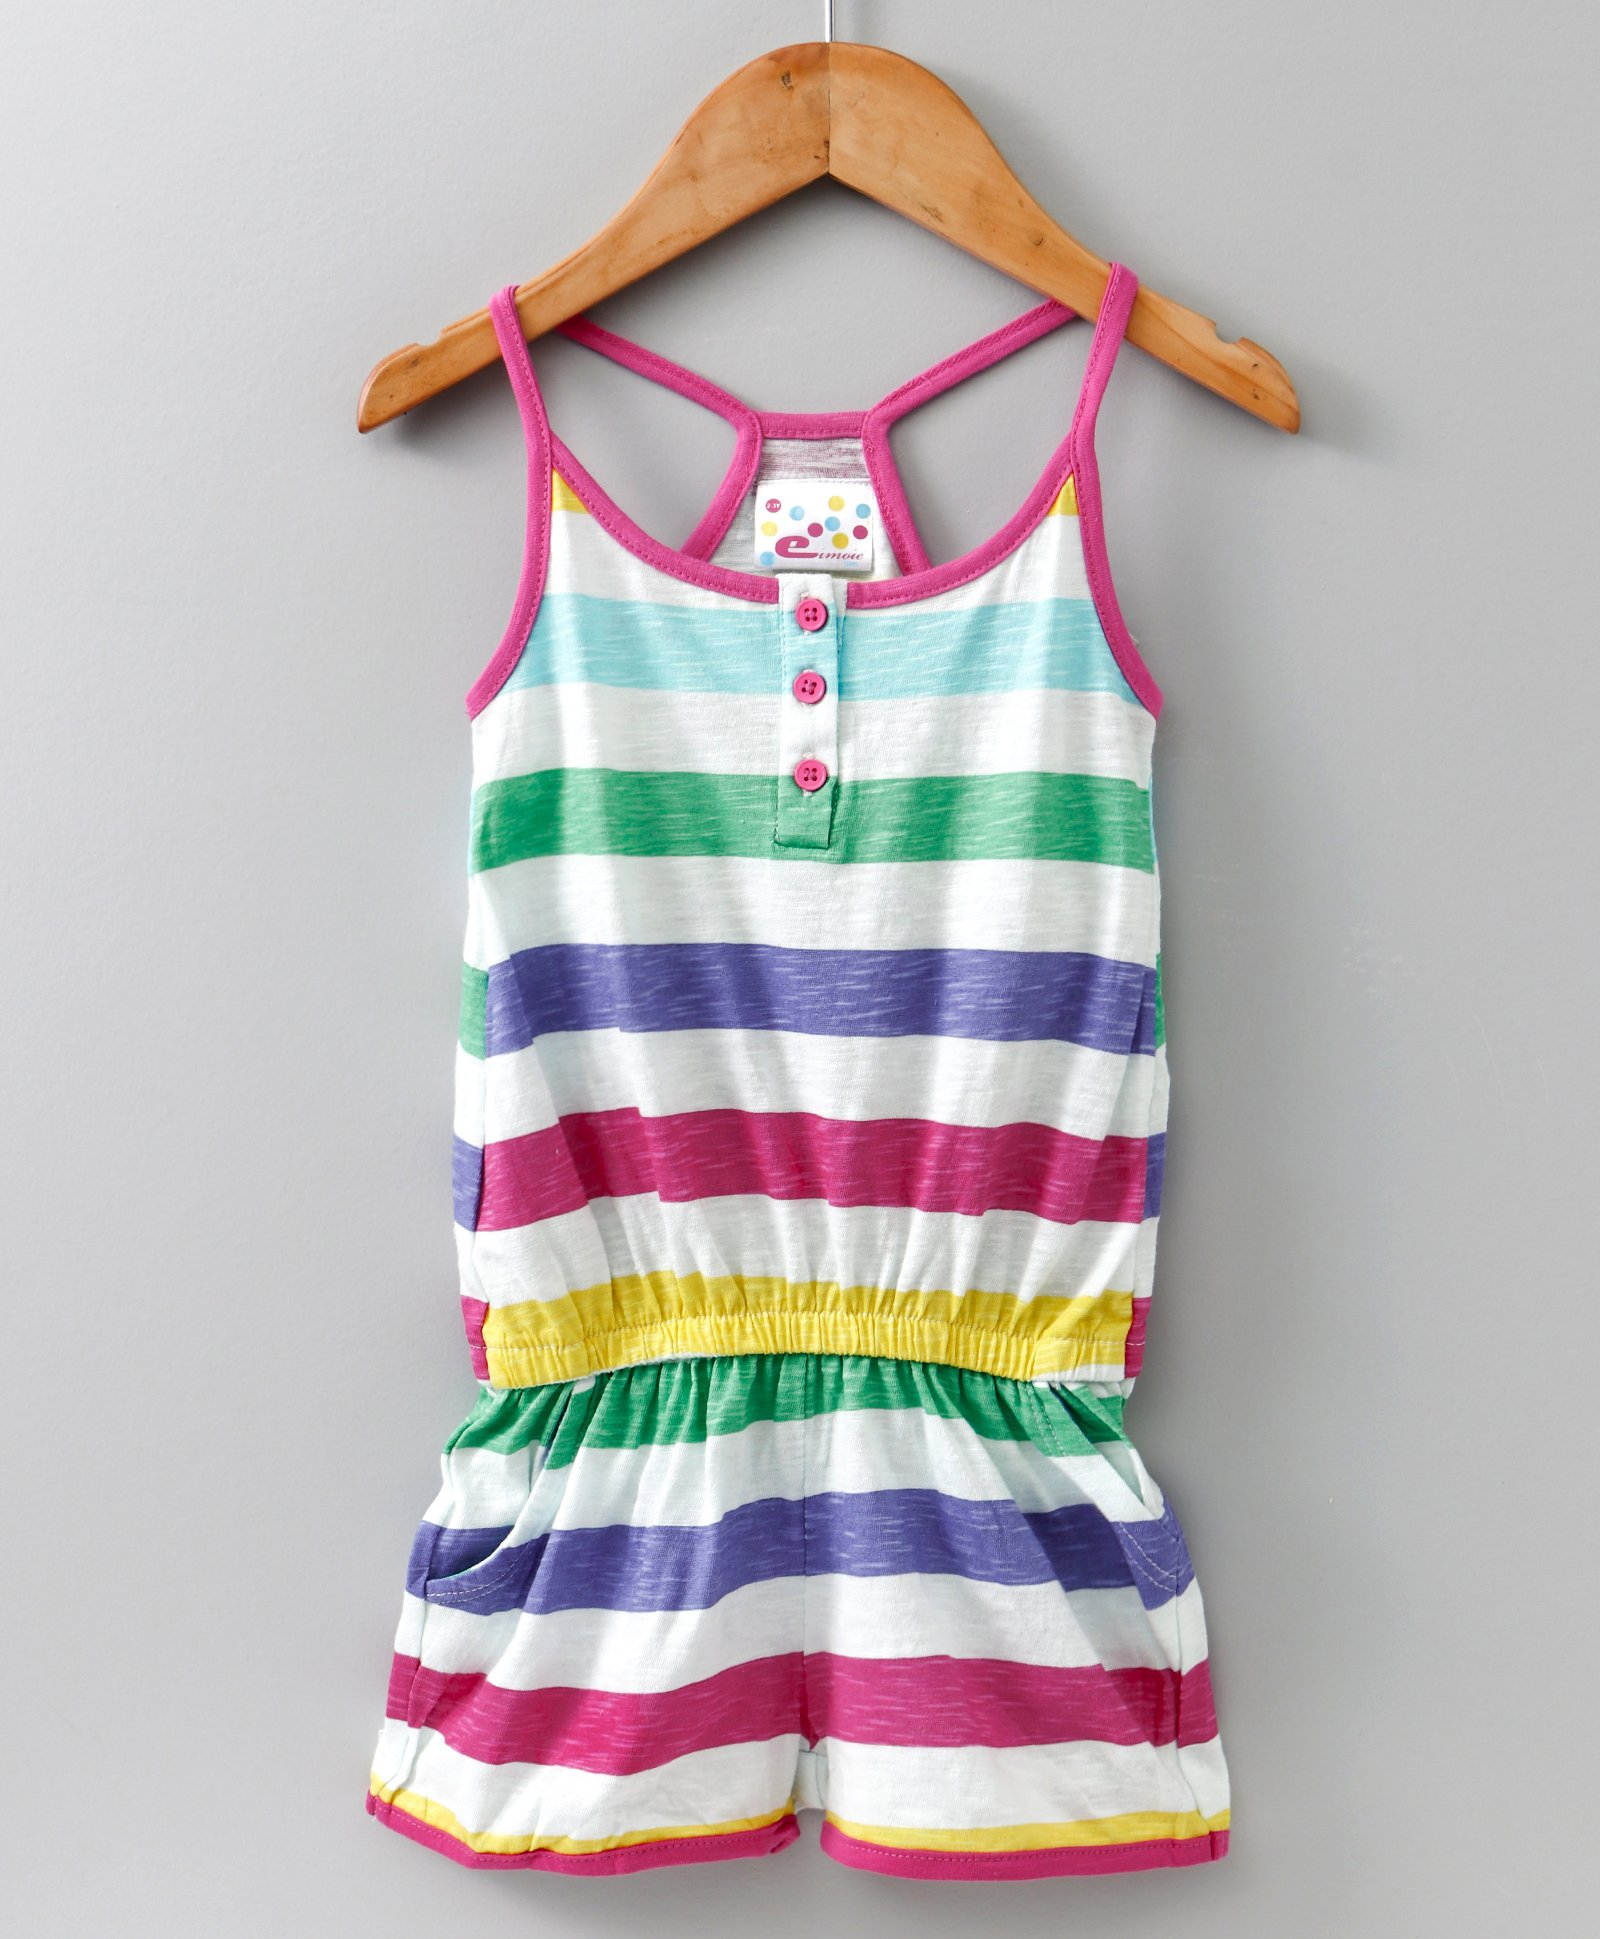 9654cac2d72 Buy Eimoie Girls Sleeveless Contrast Striped Jumpsuit Multicolor for ...